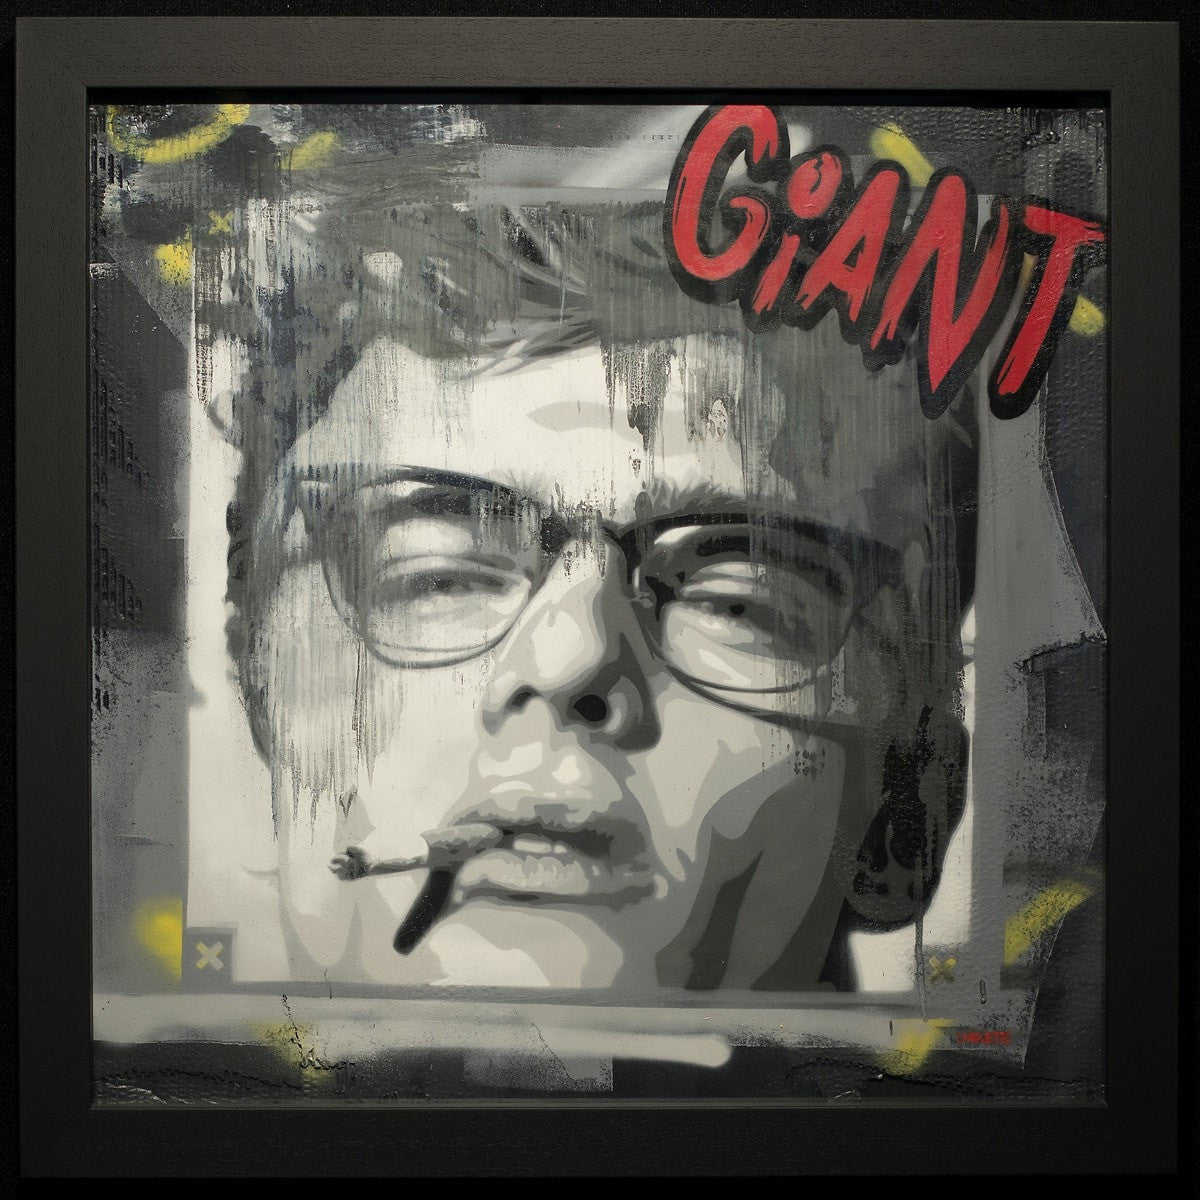 James Dean - Giant Lhouette